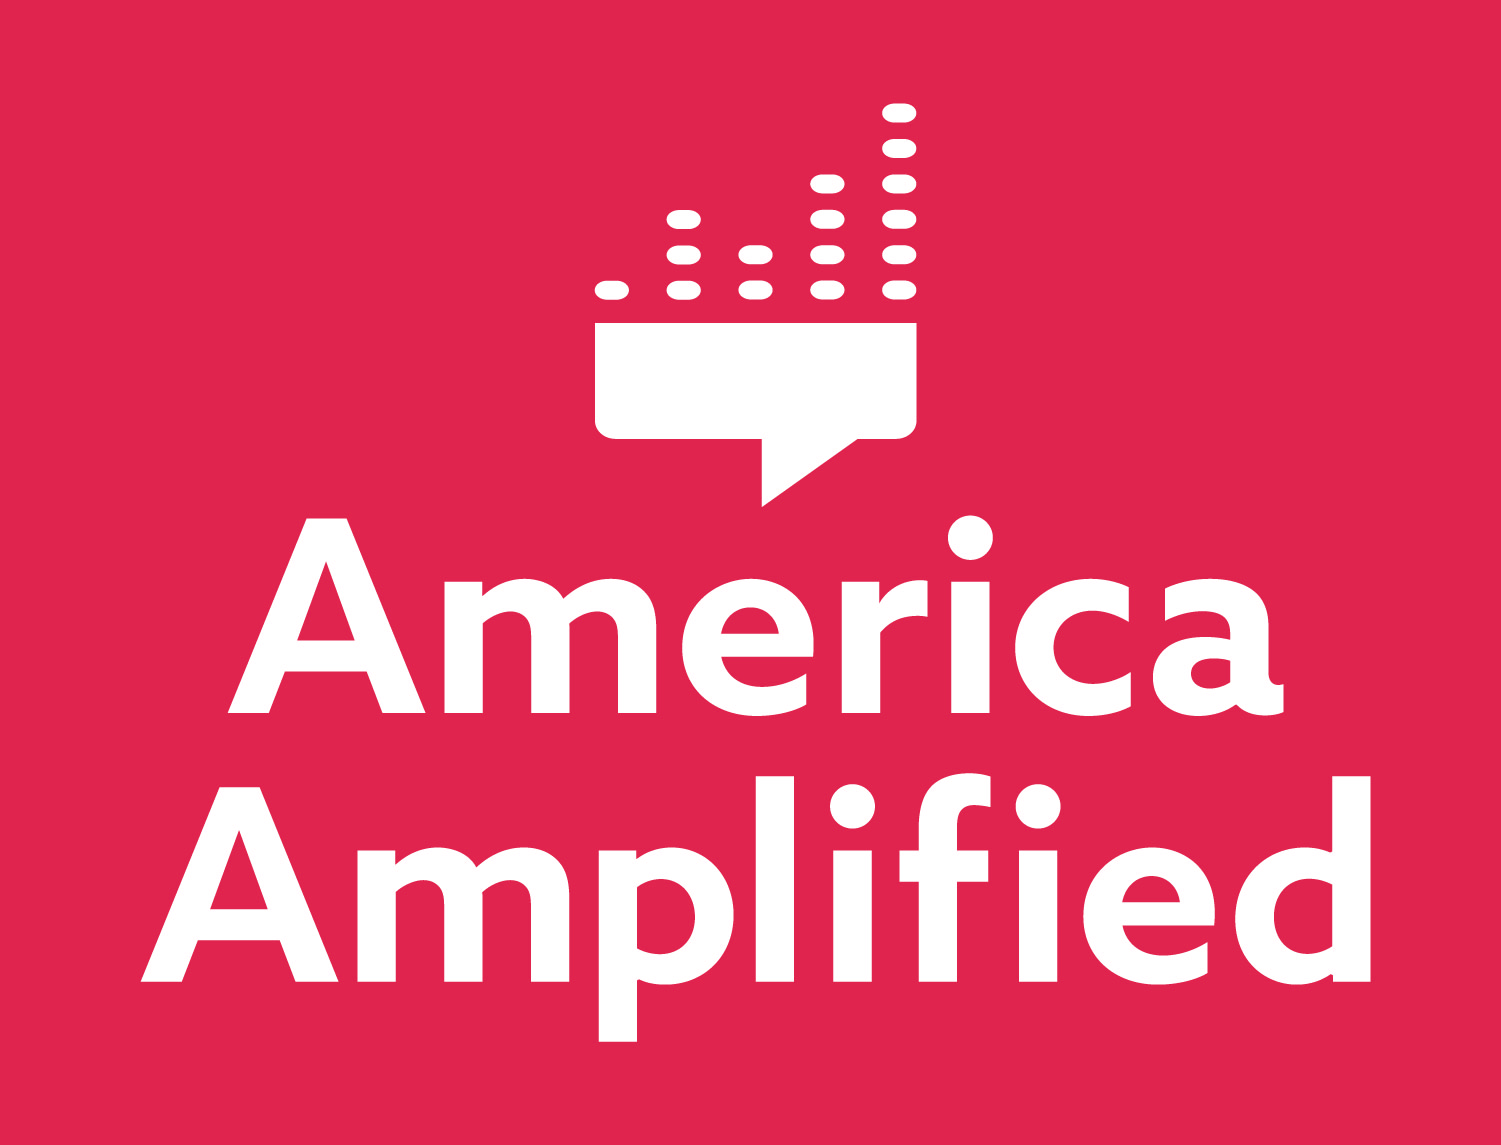 America Amplified